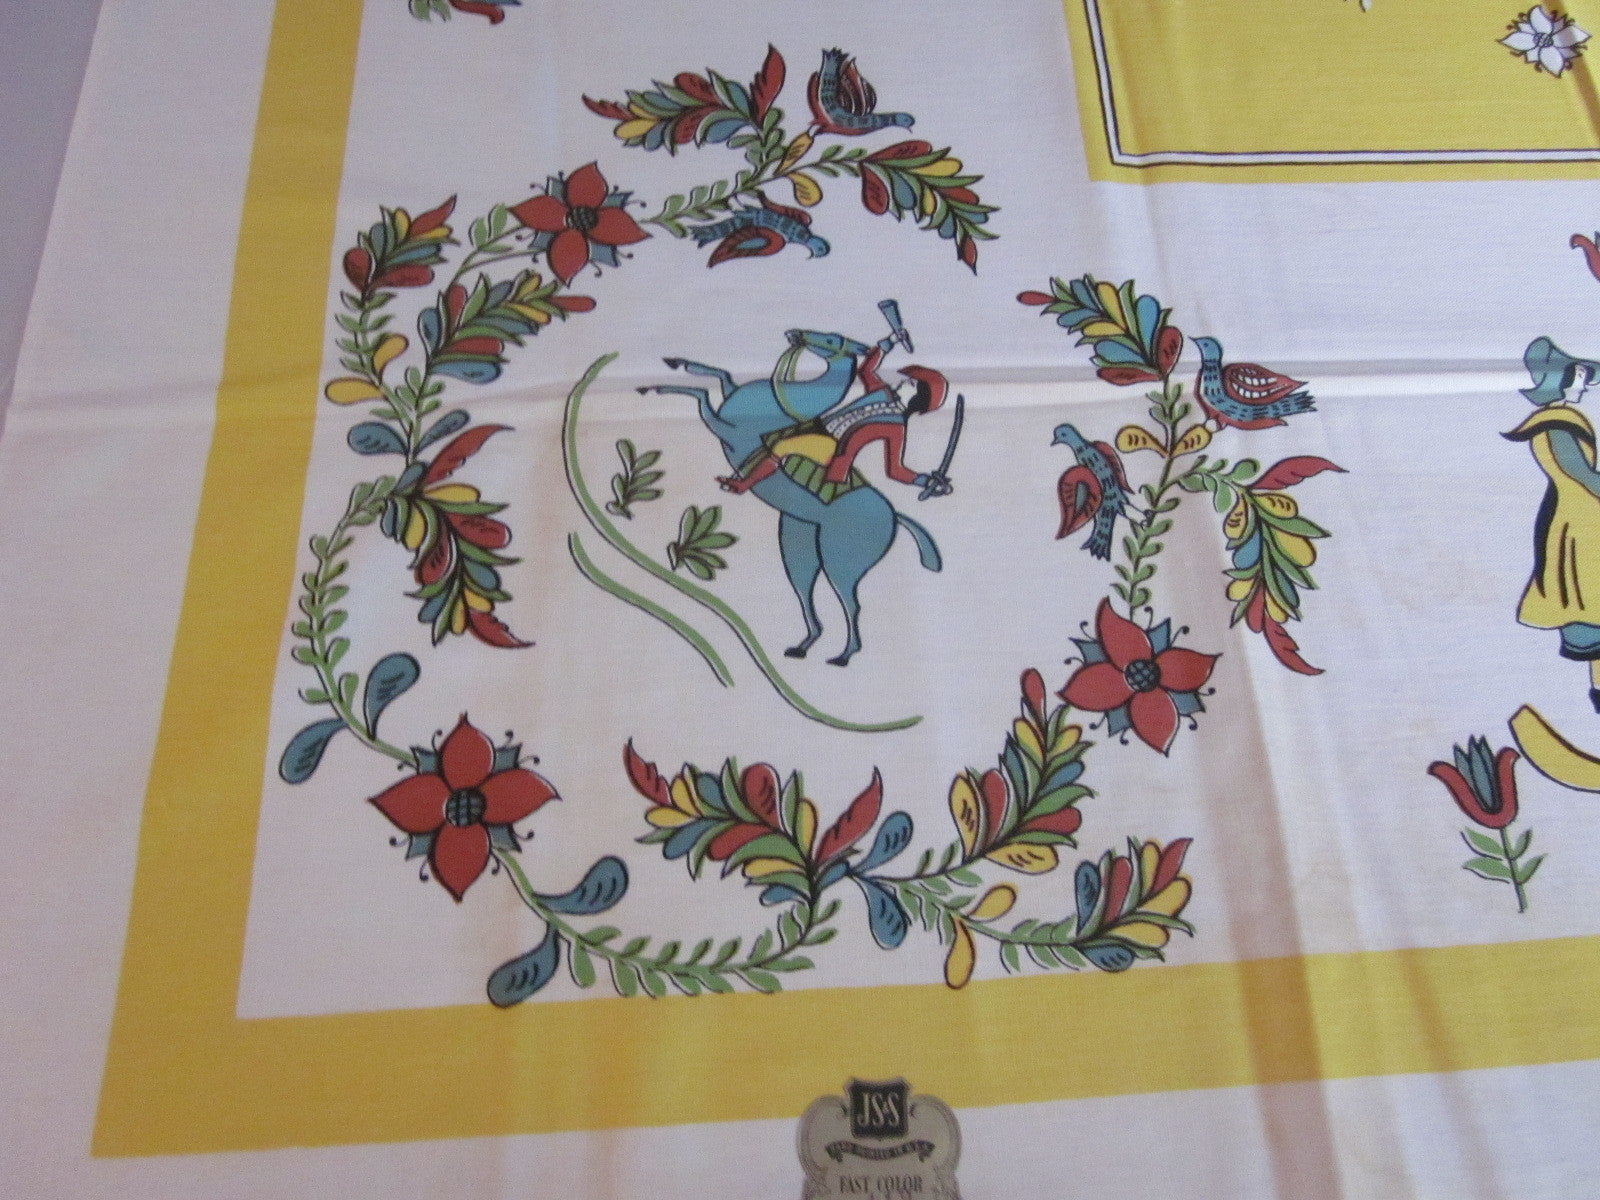 Pilgrims PA Dutch Gold Novelty MWT Vintage Printed Tablecloth (53 X 52)